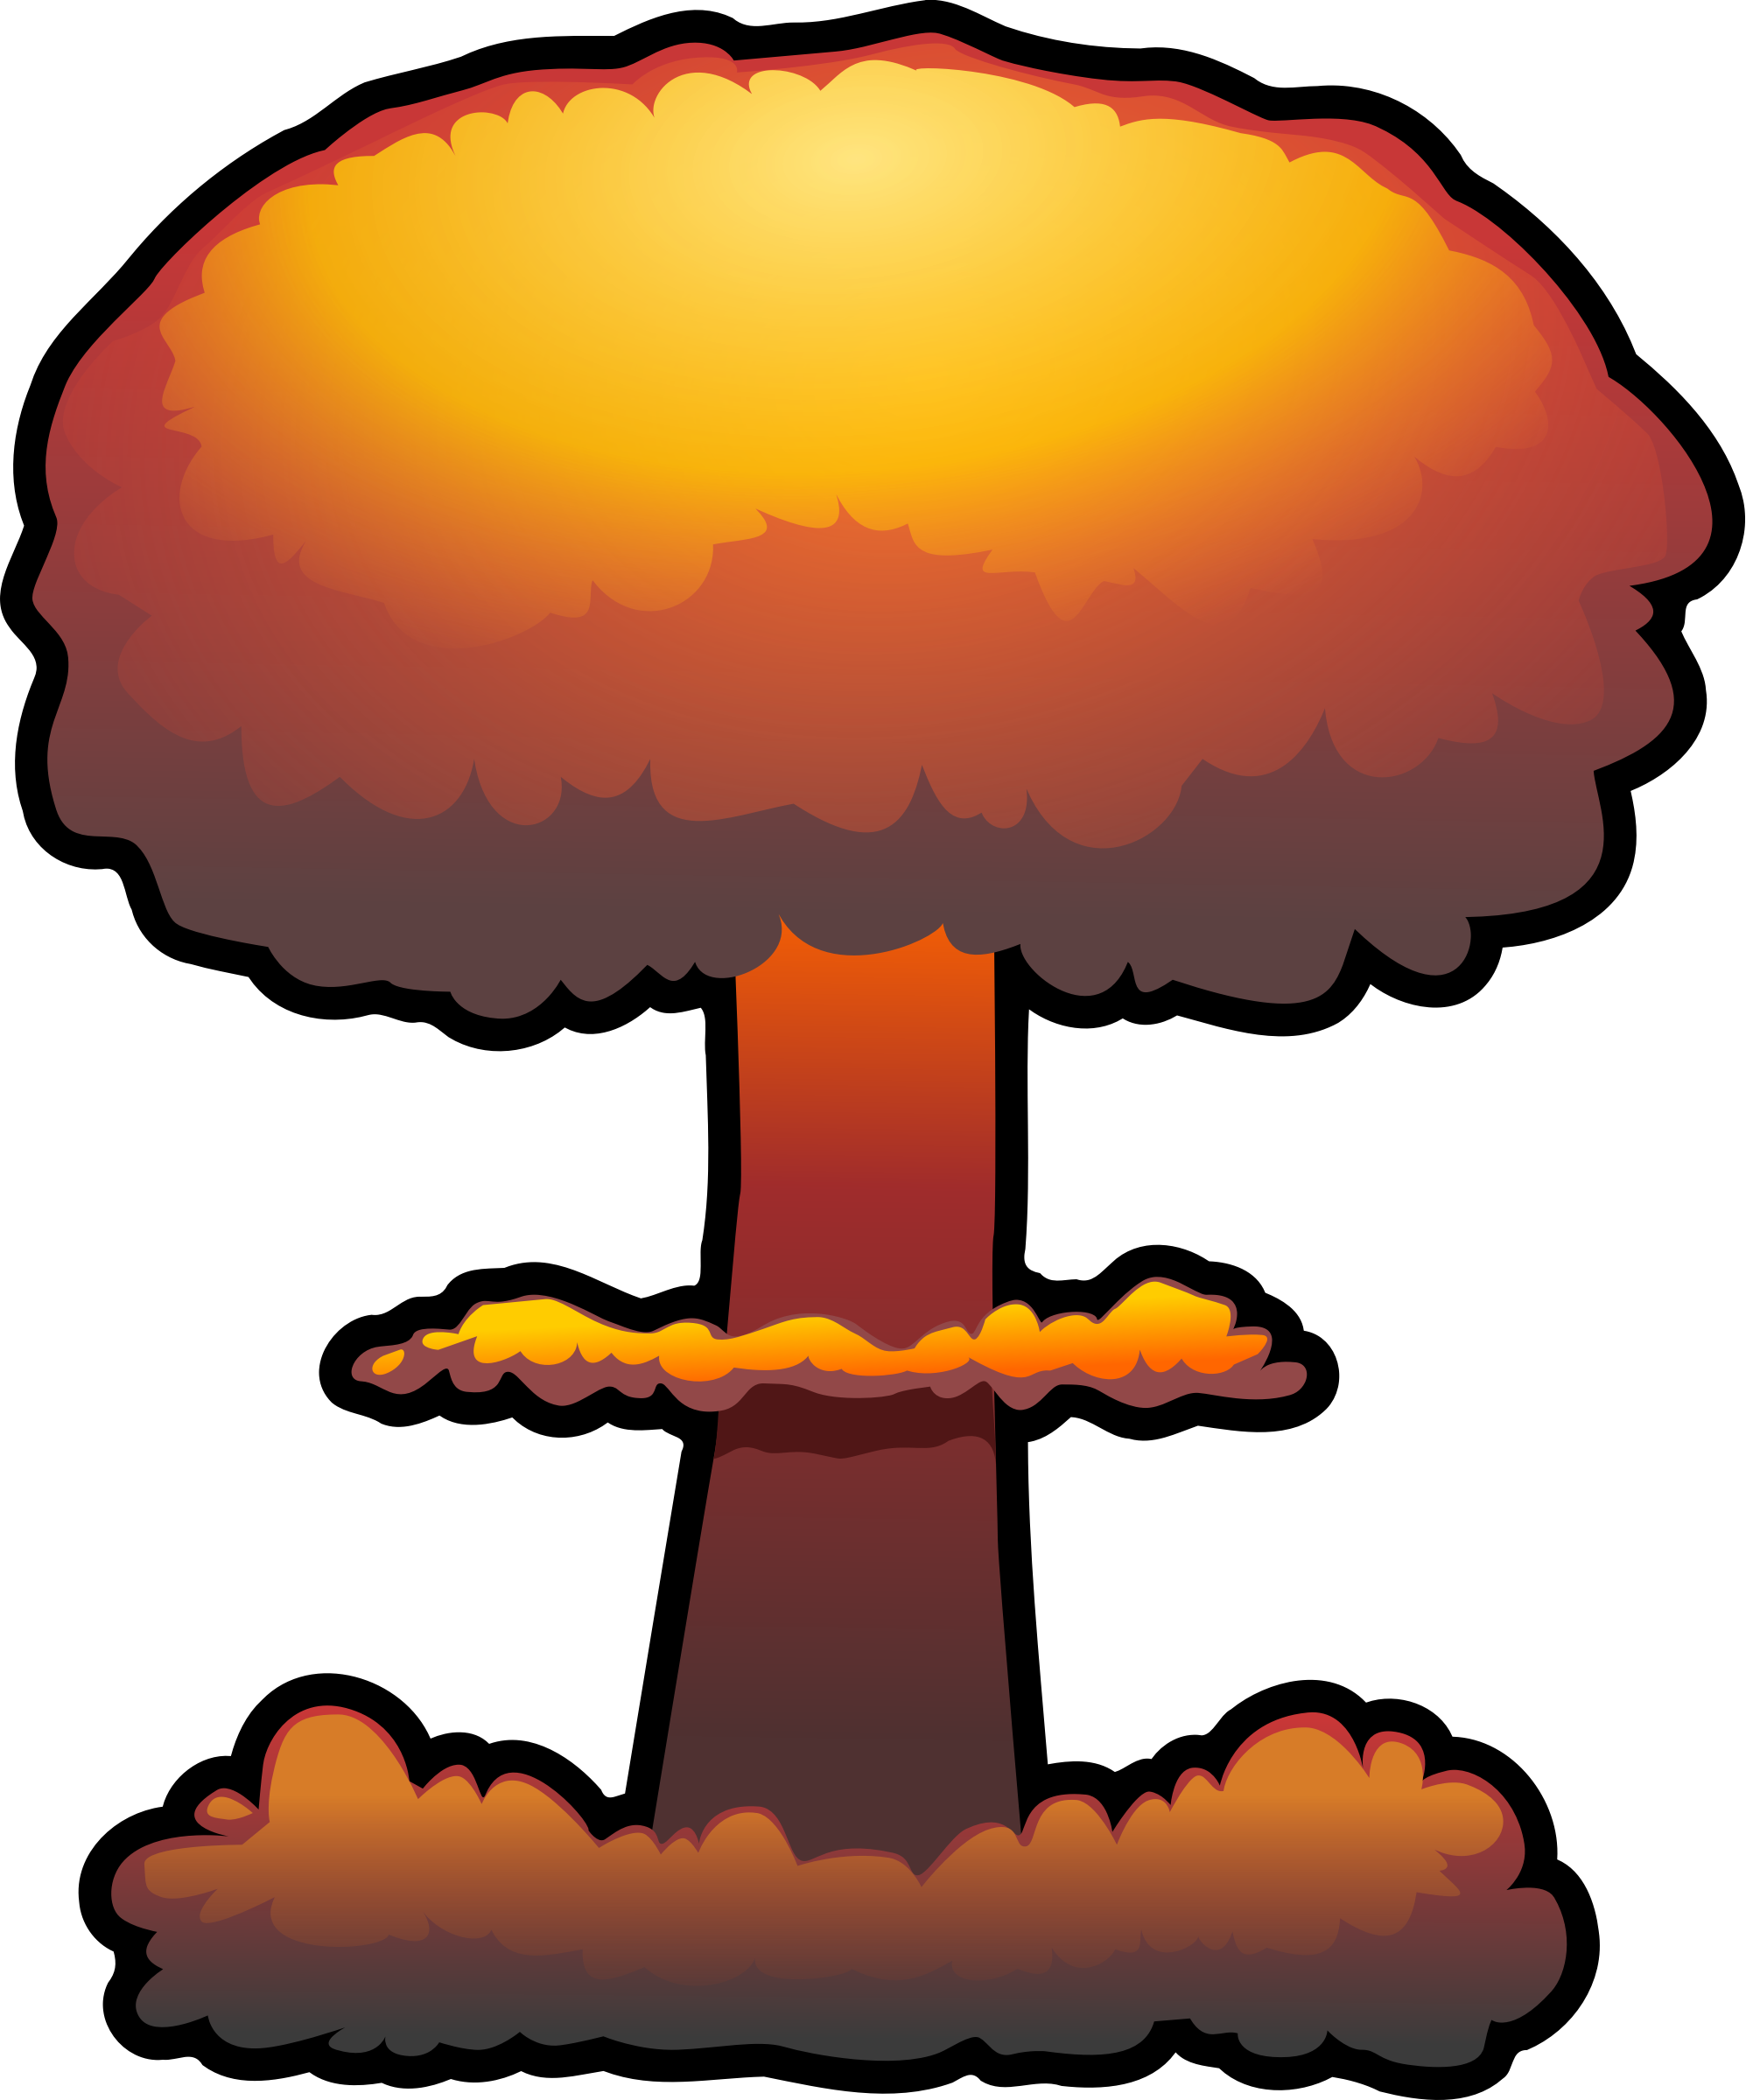 Bomb clipart minefield. Continuing with jquery errors